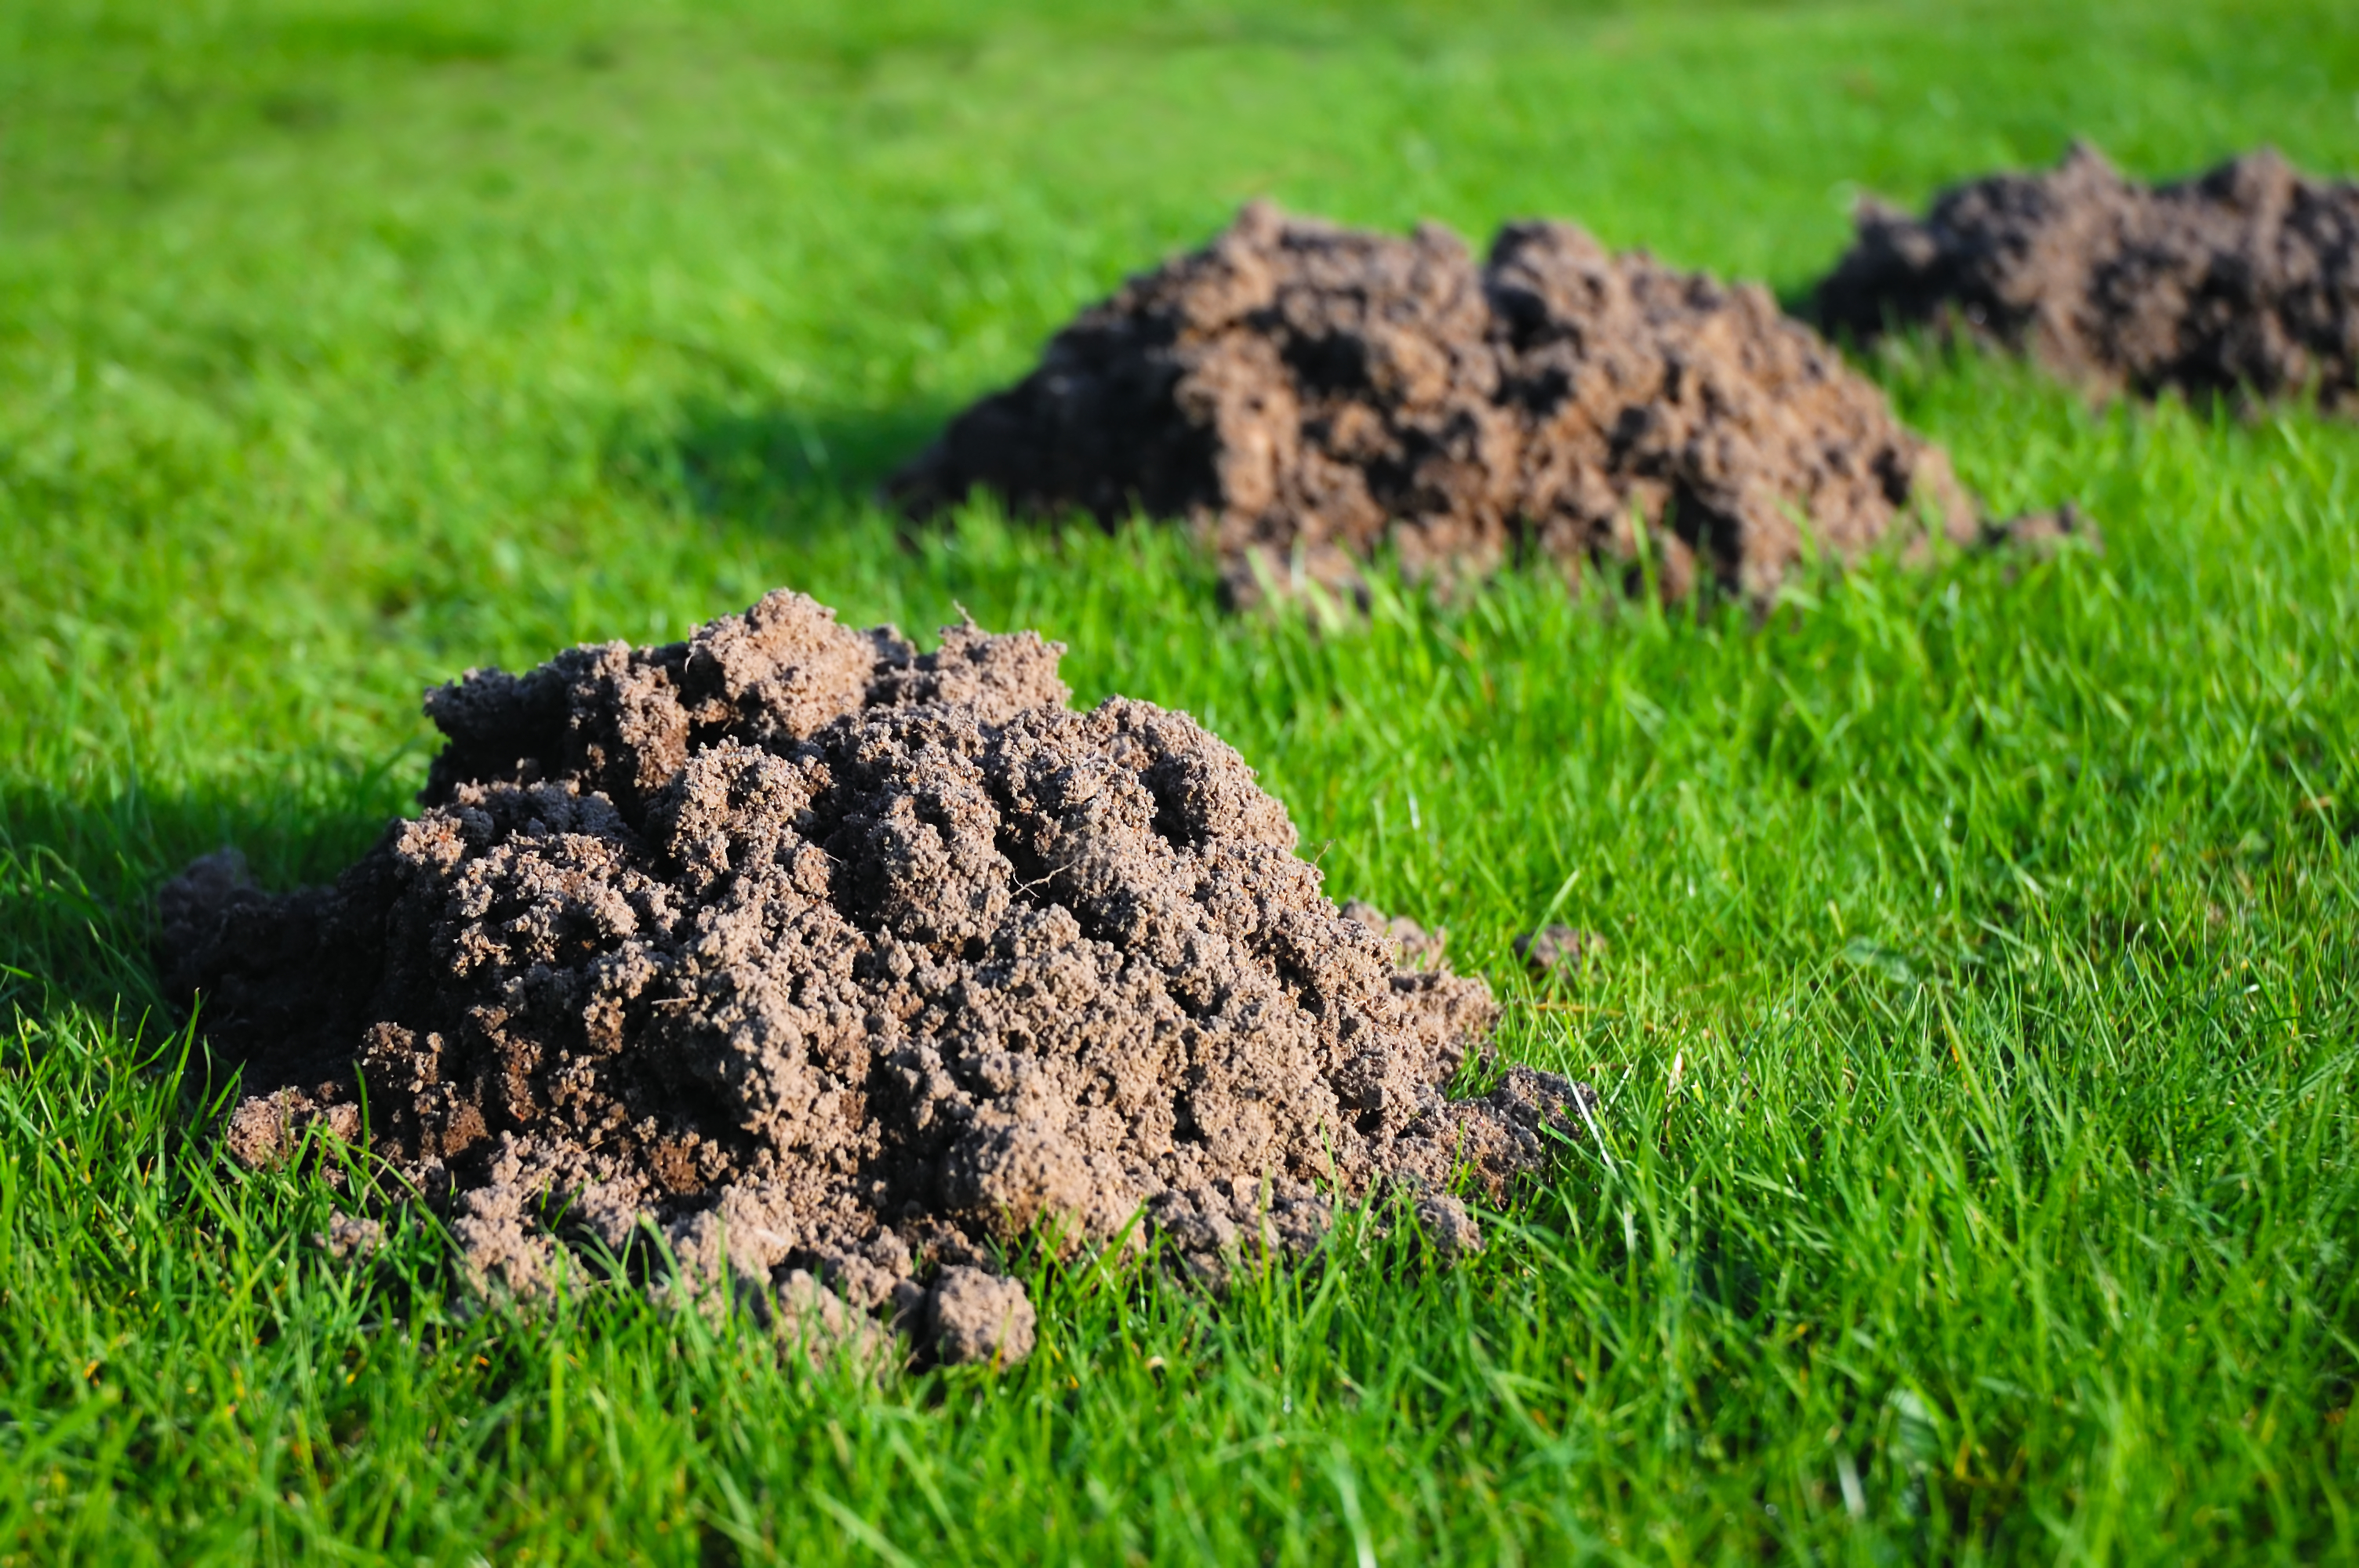 How to get rid of ground moles - How Does An Artificial Lawn Stand Up Against Moles